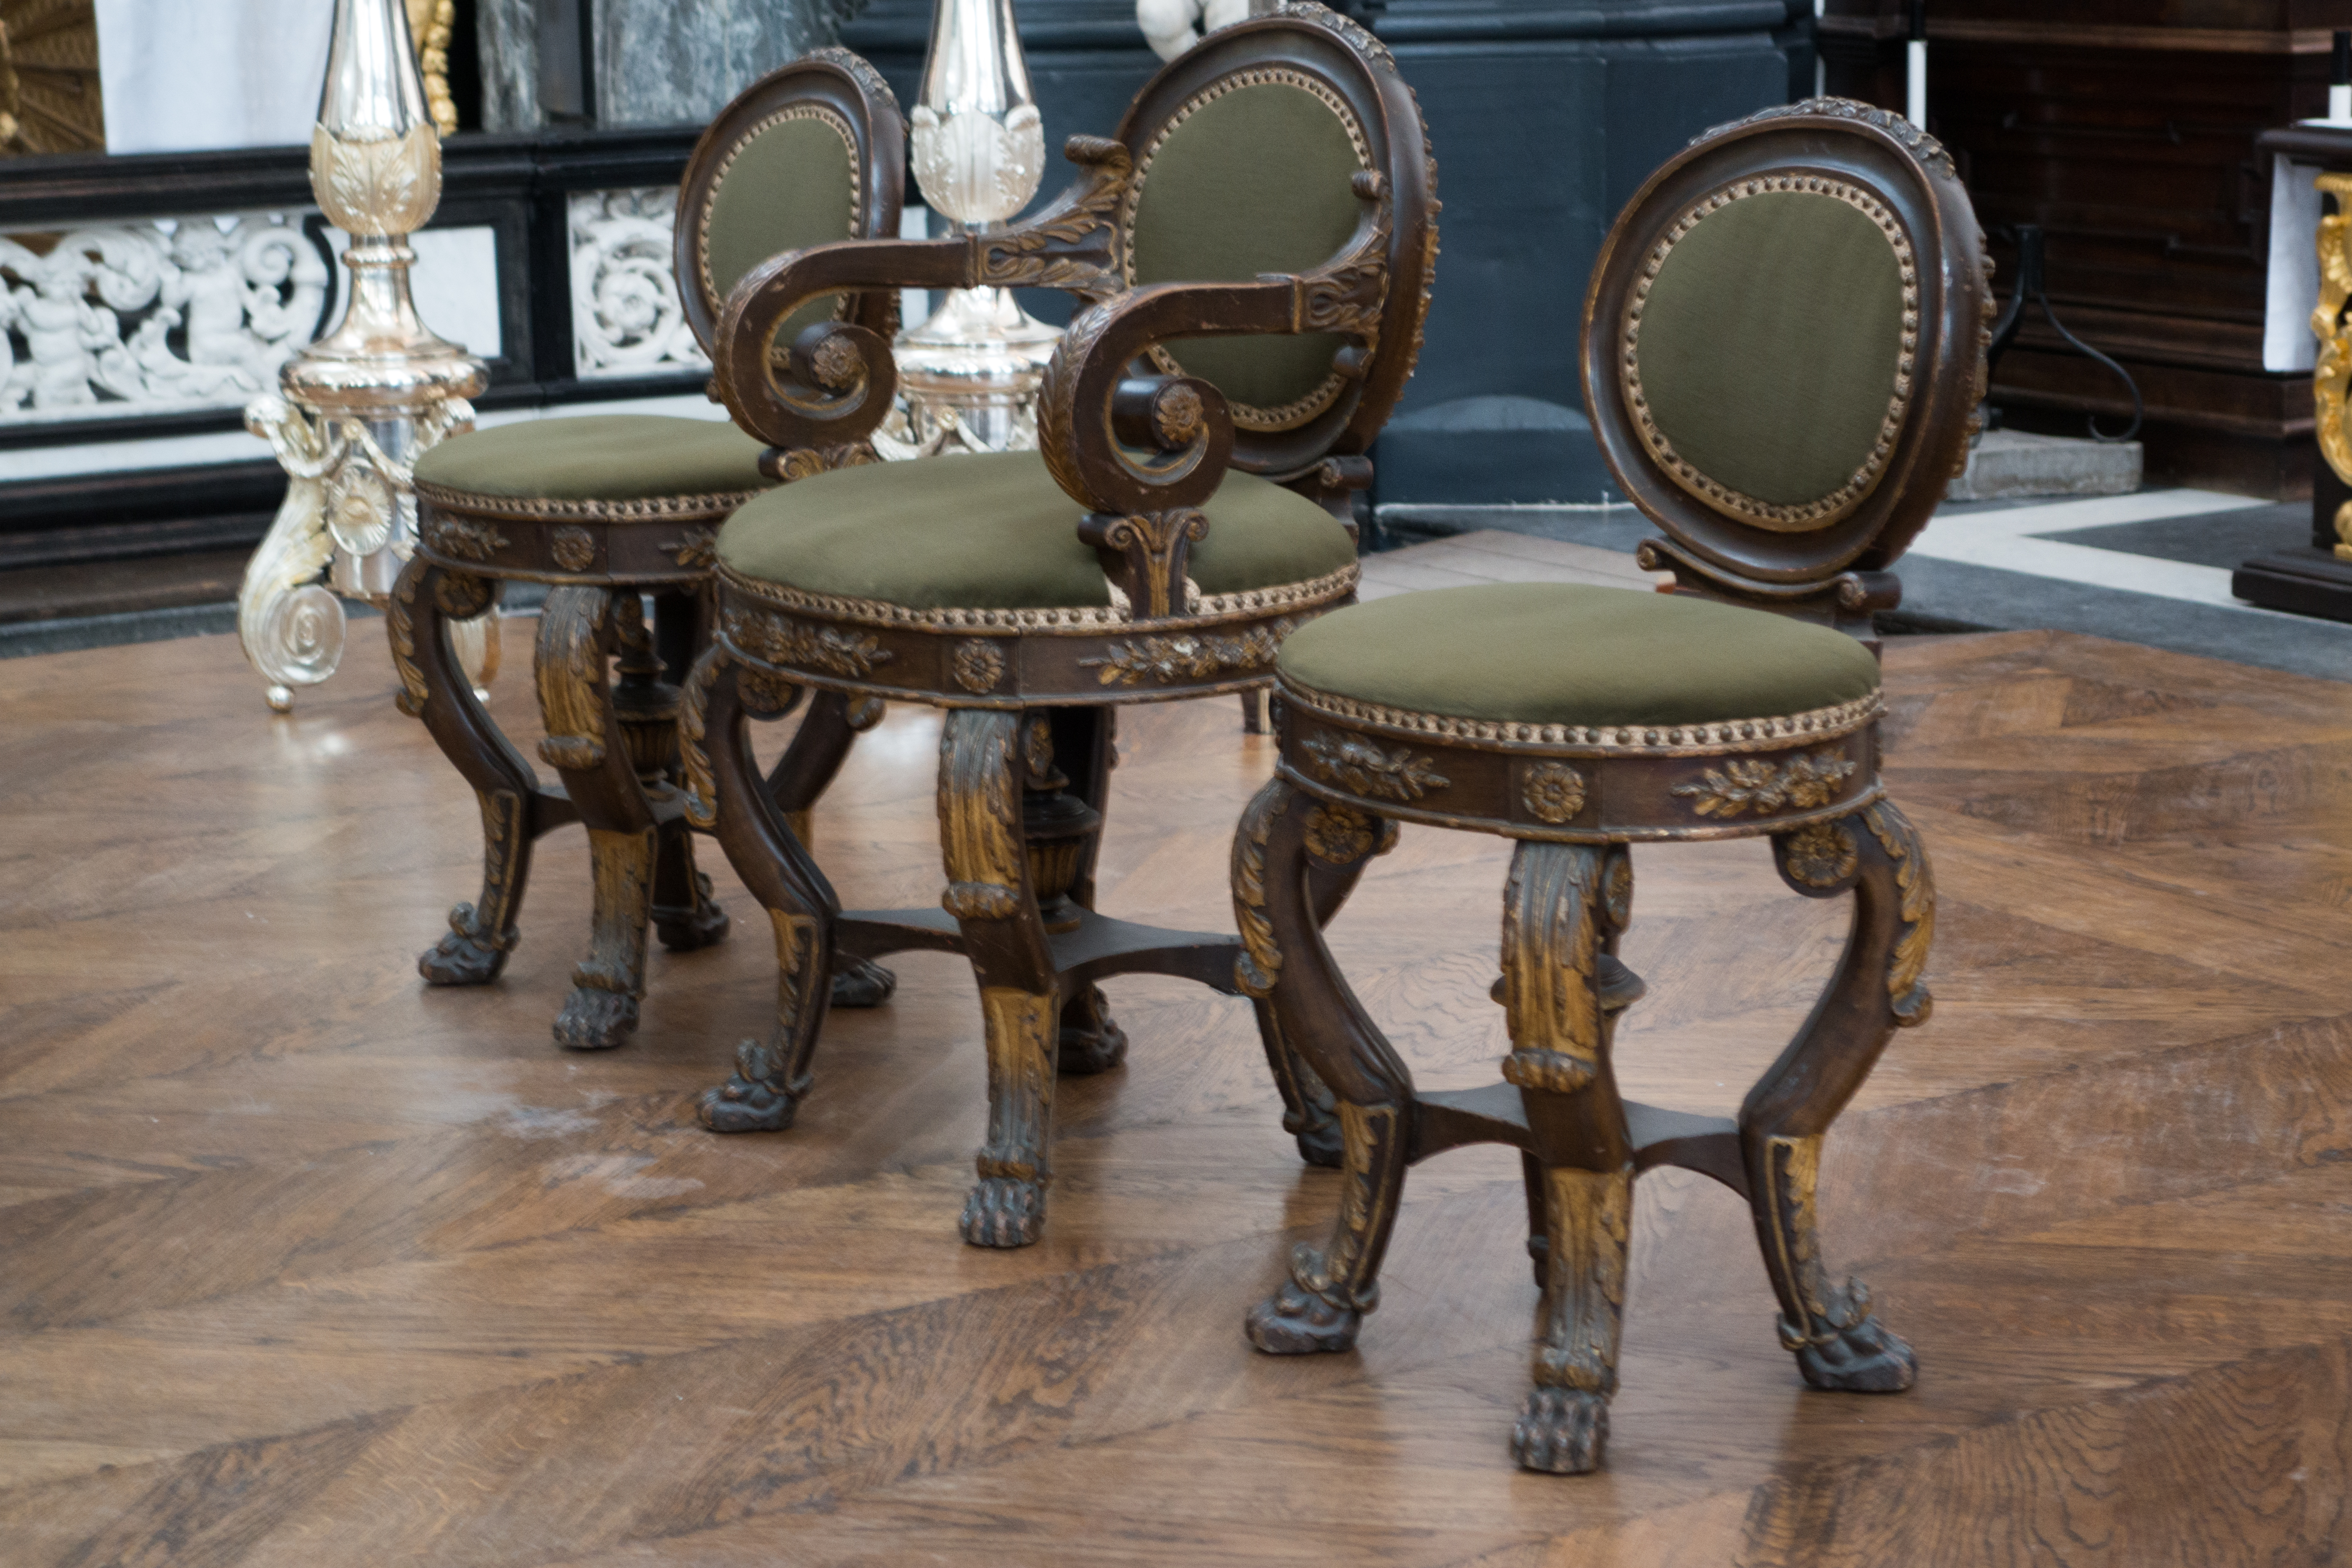 shield antique l stools victorian pairs and mahogany shaped side hall sofas refno chairs chair single